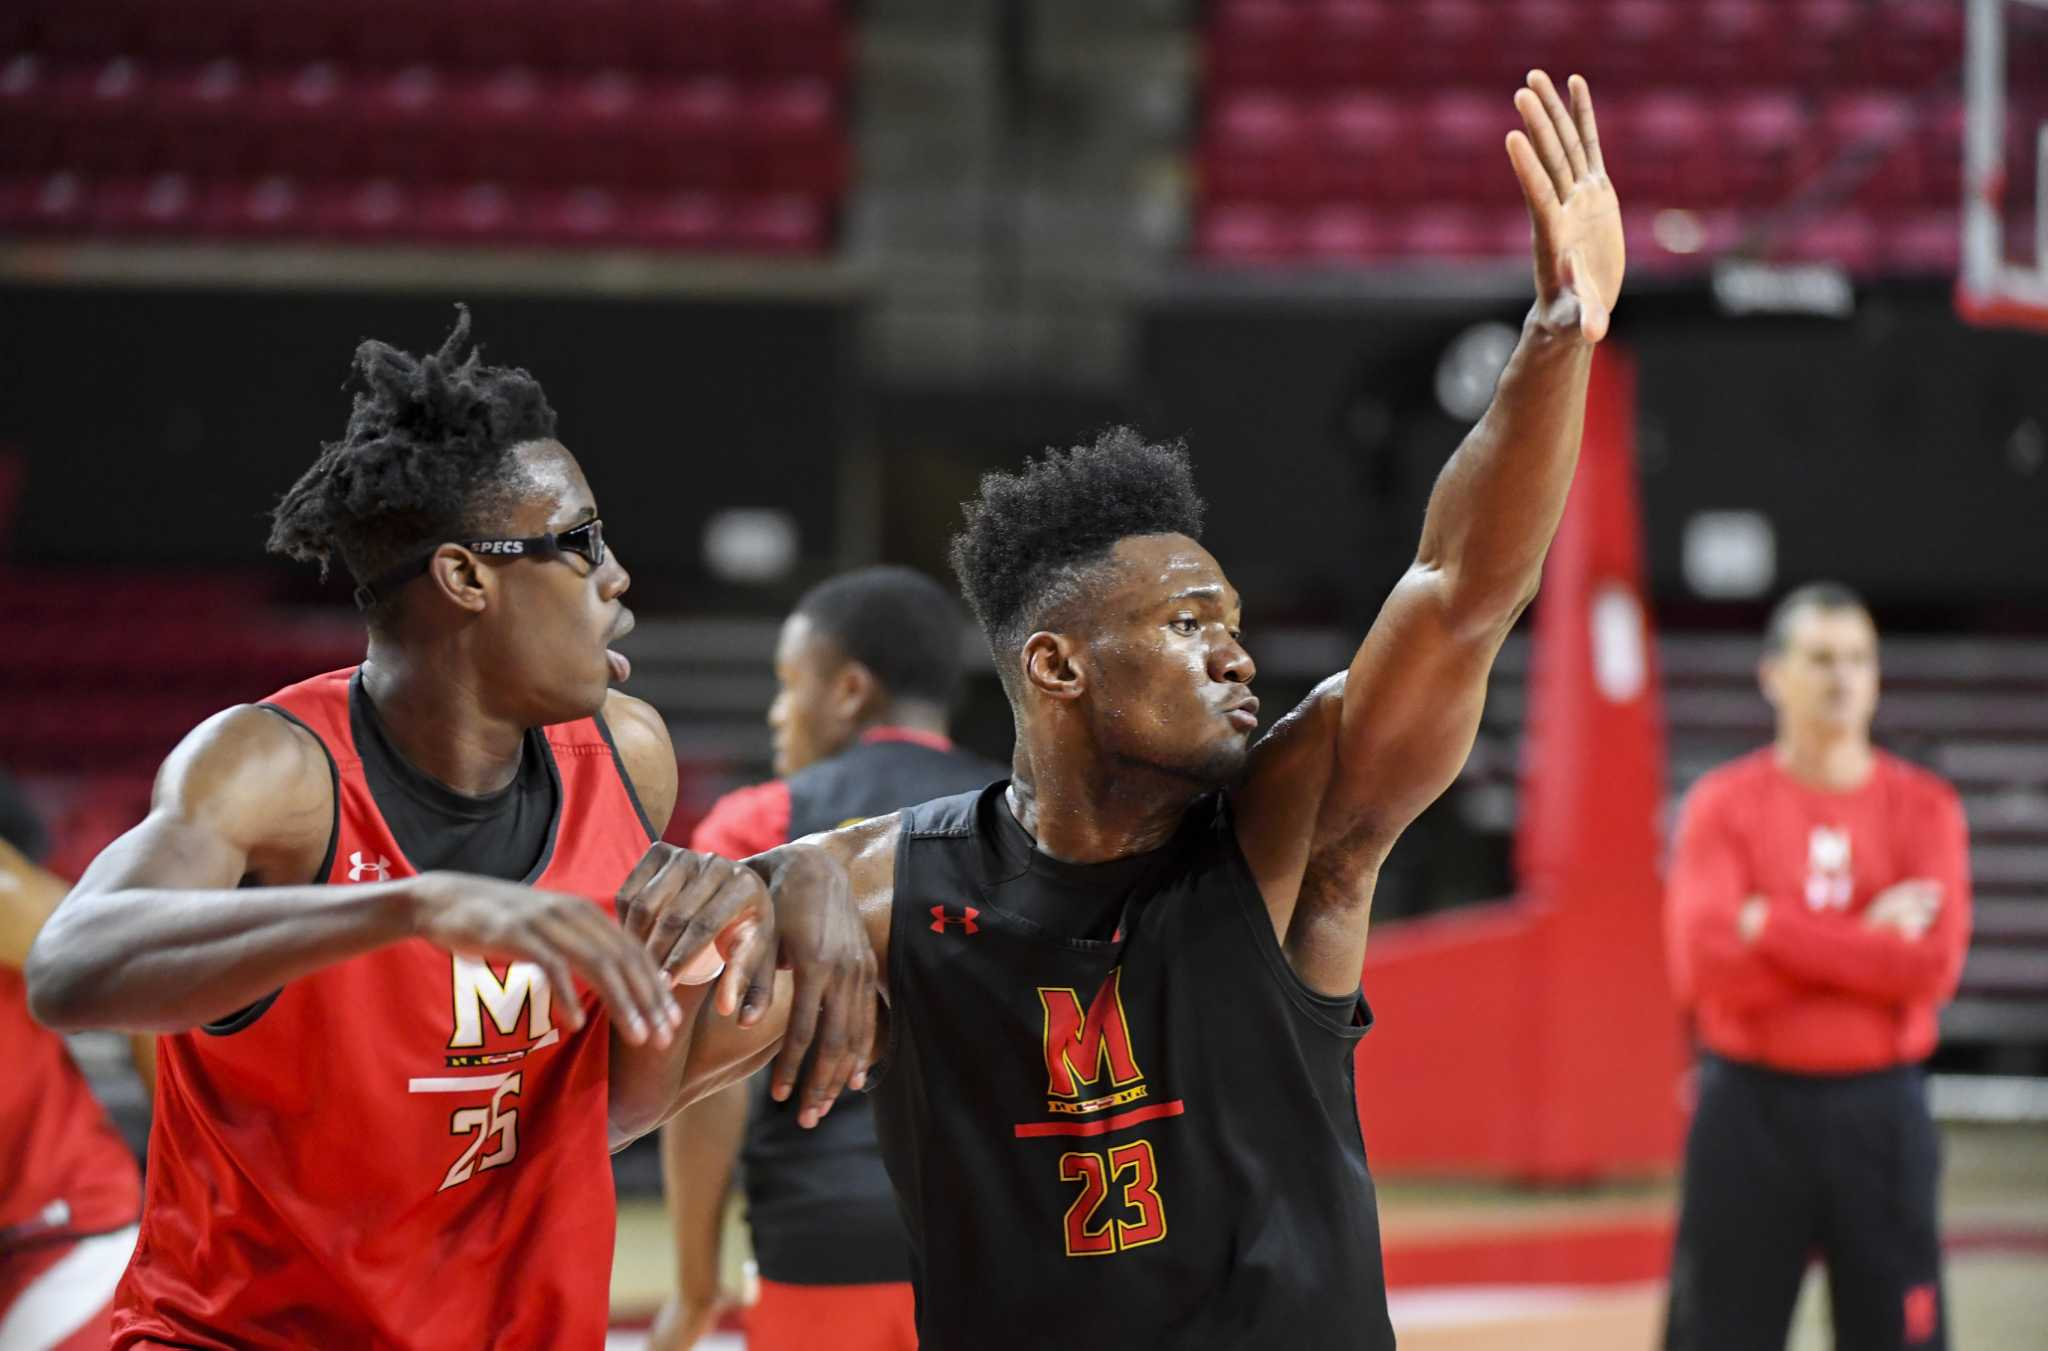 Maryland basketball gets ready for season touting the promise of its youth - SFG...